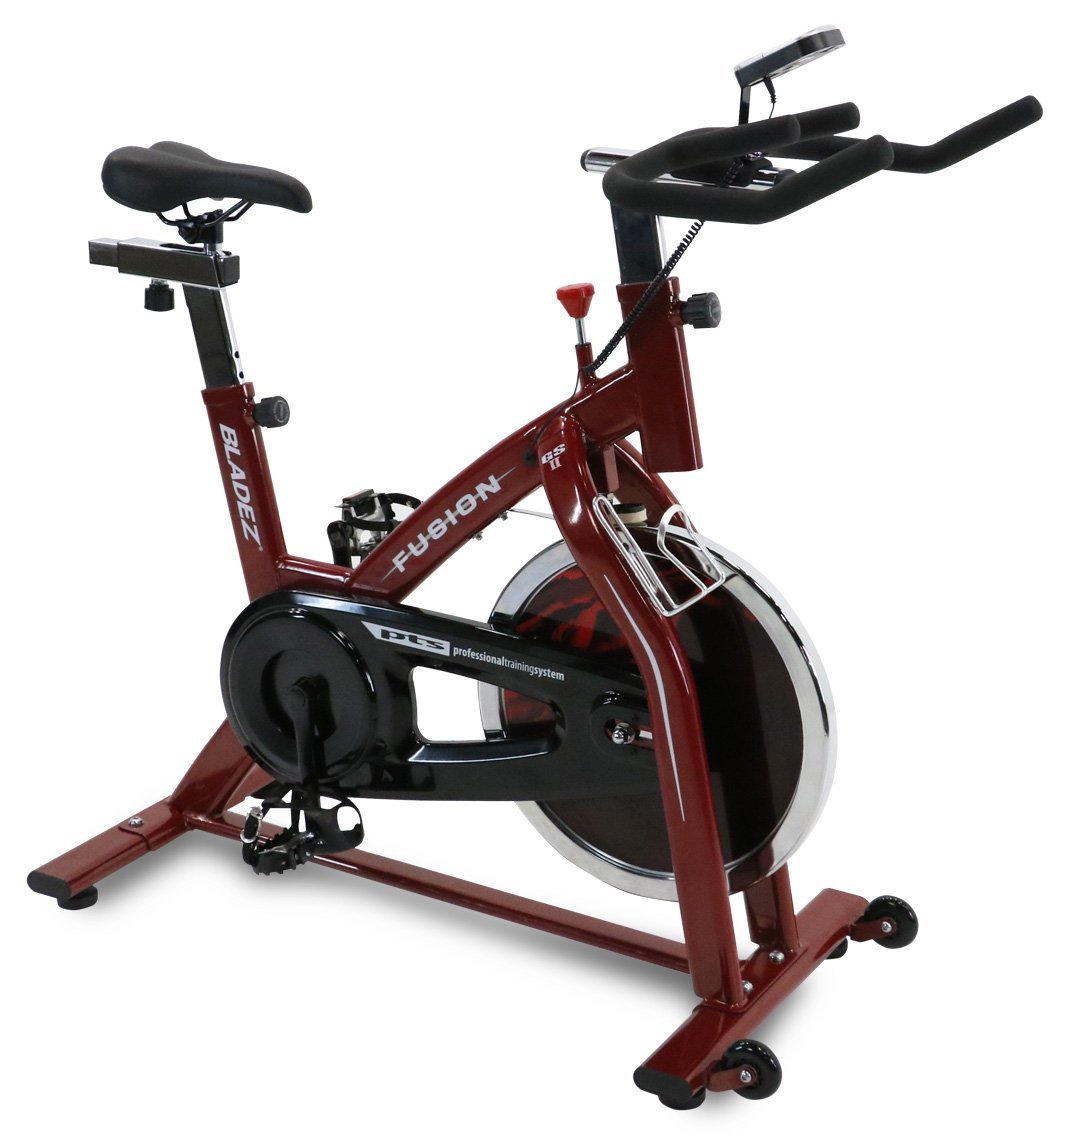 Bladez Fitness Fusion GS Indoor Cycle